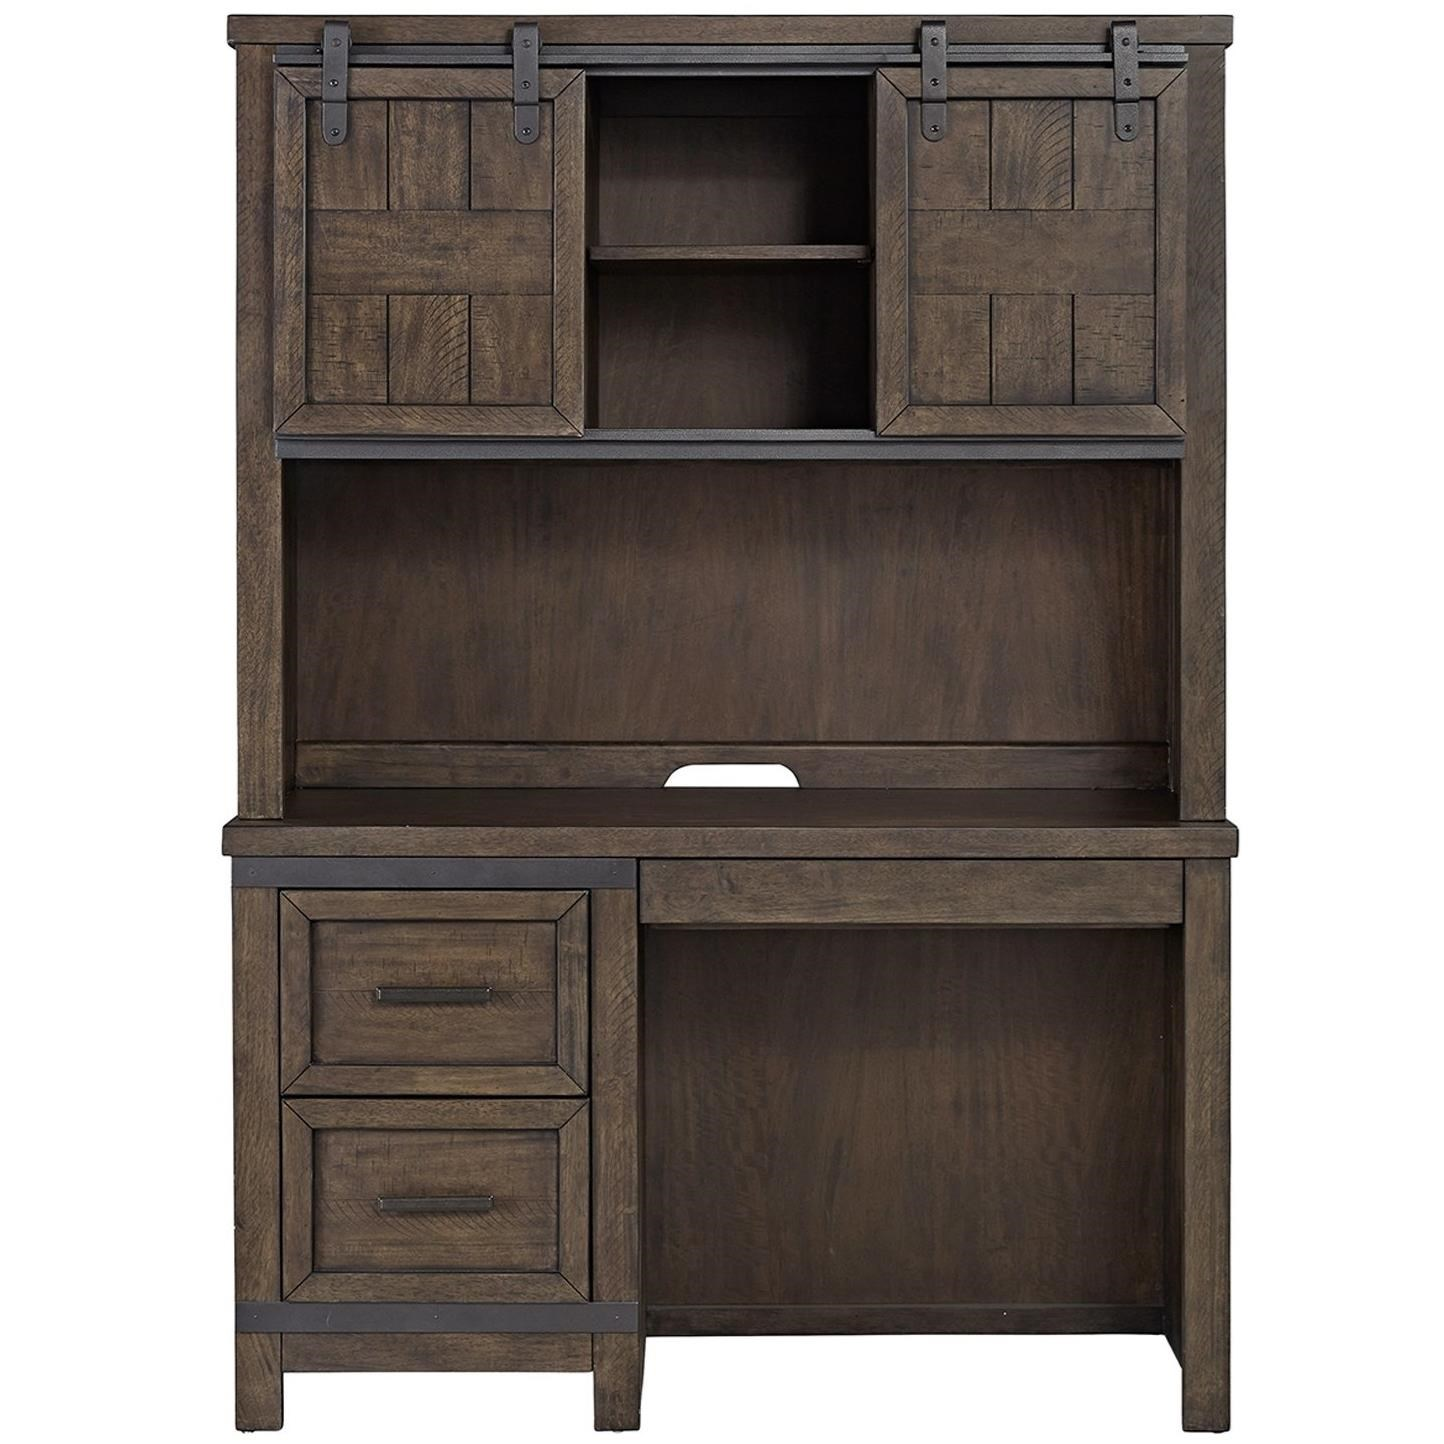 Liberty Furniture Thornwood Hills Rustic Student Desk With Double Barn Door Hutch